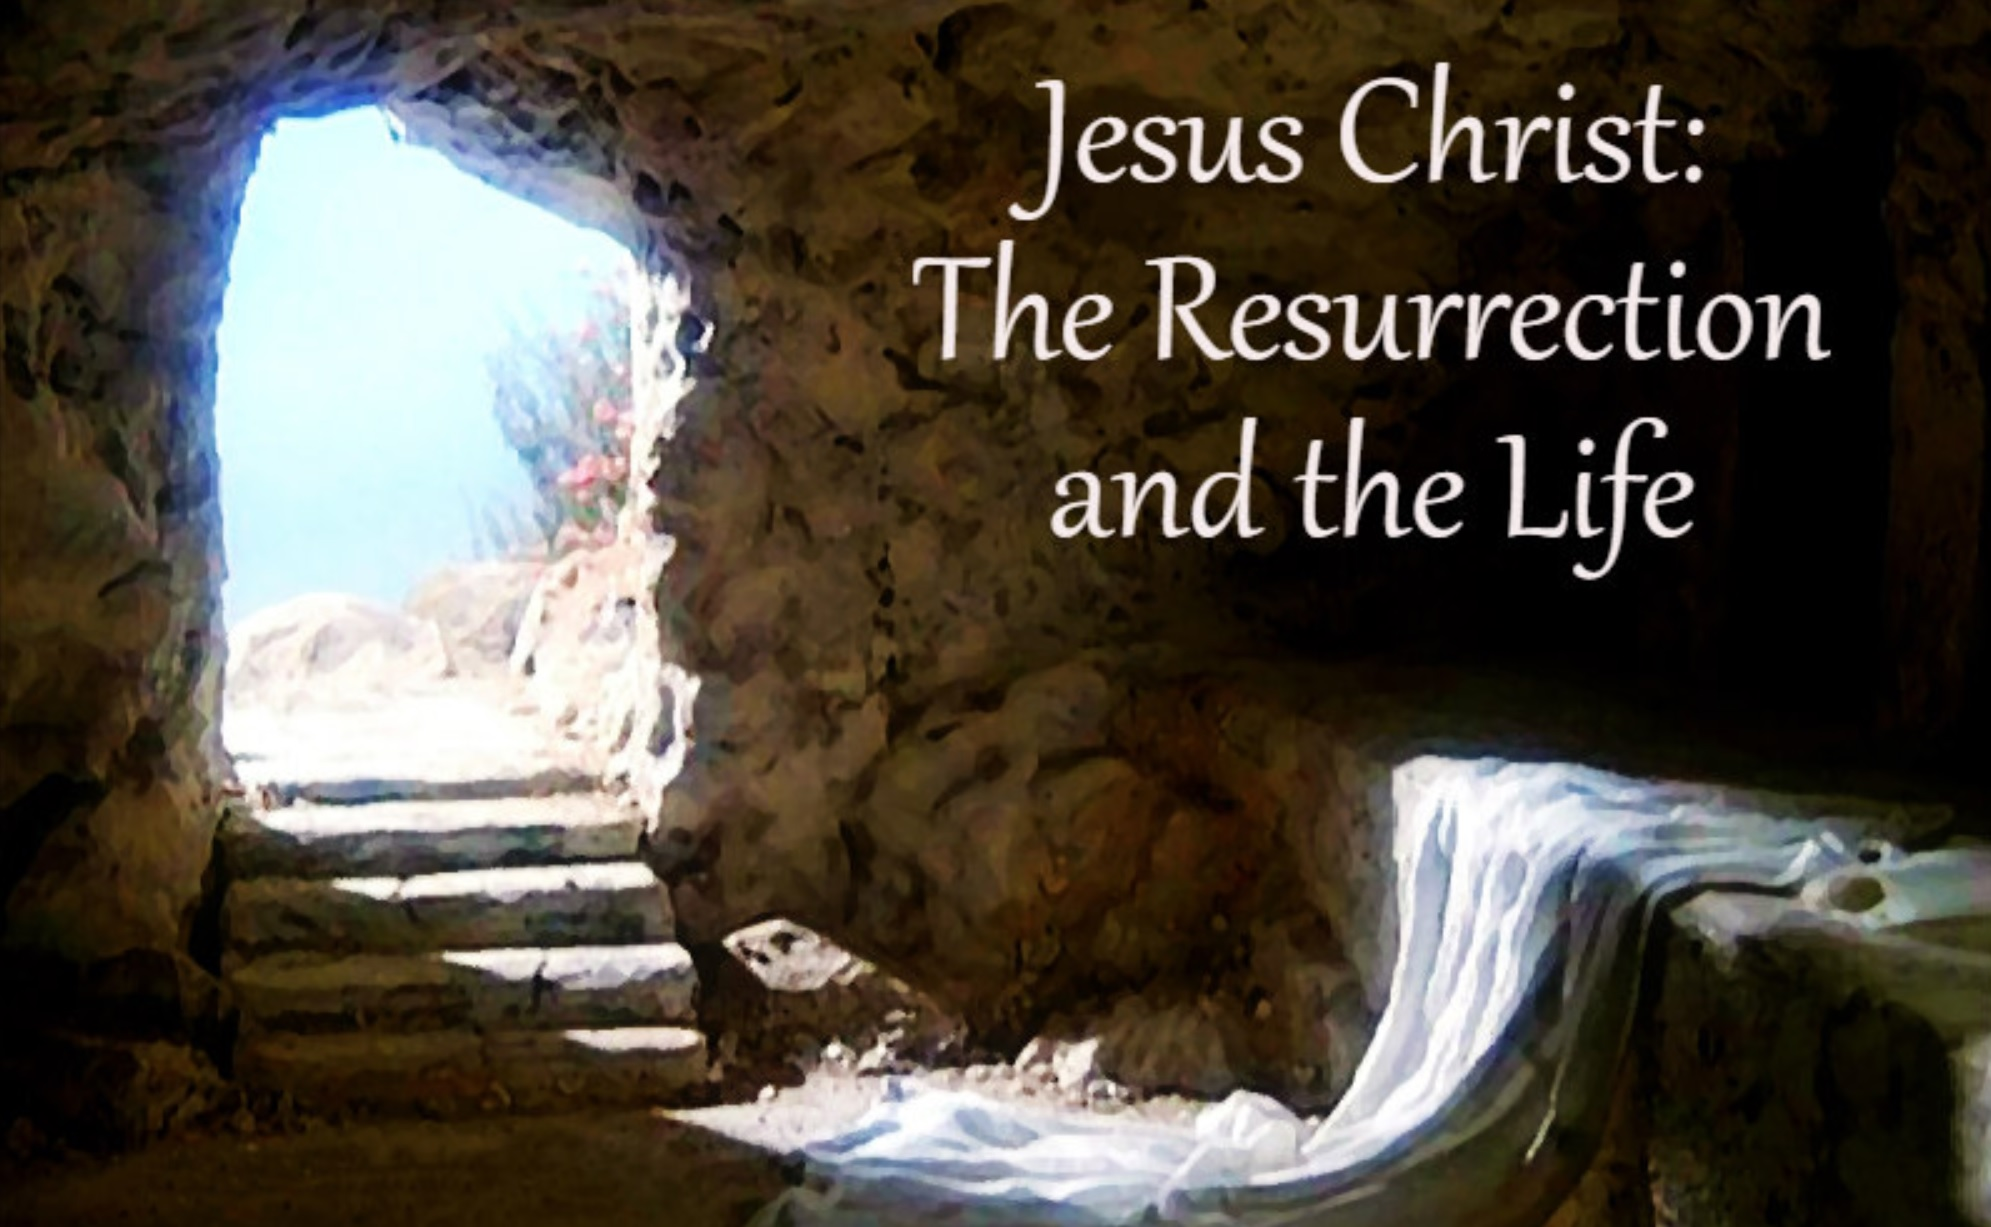 2021-08-21 The Resurrection and the Life